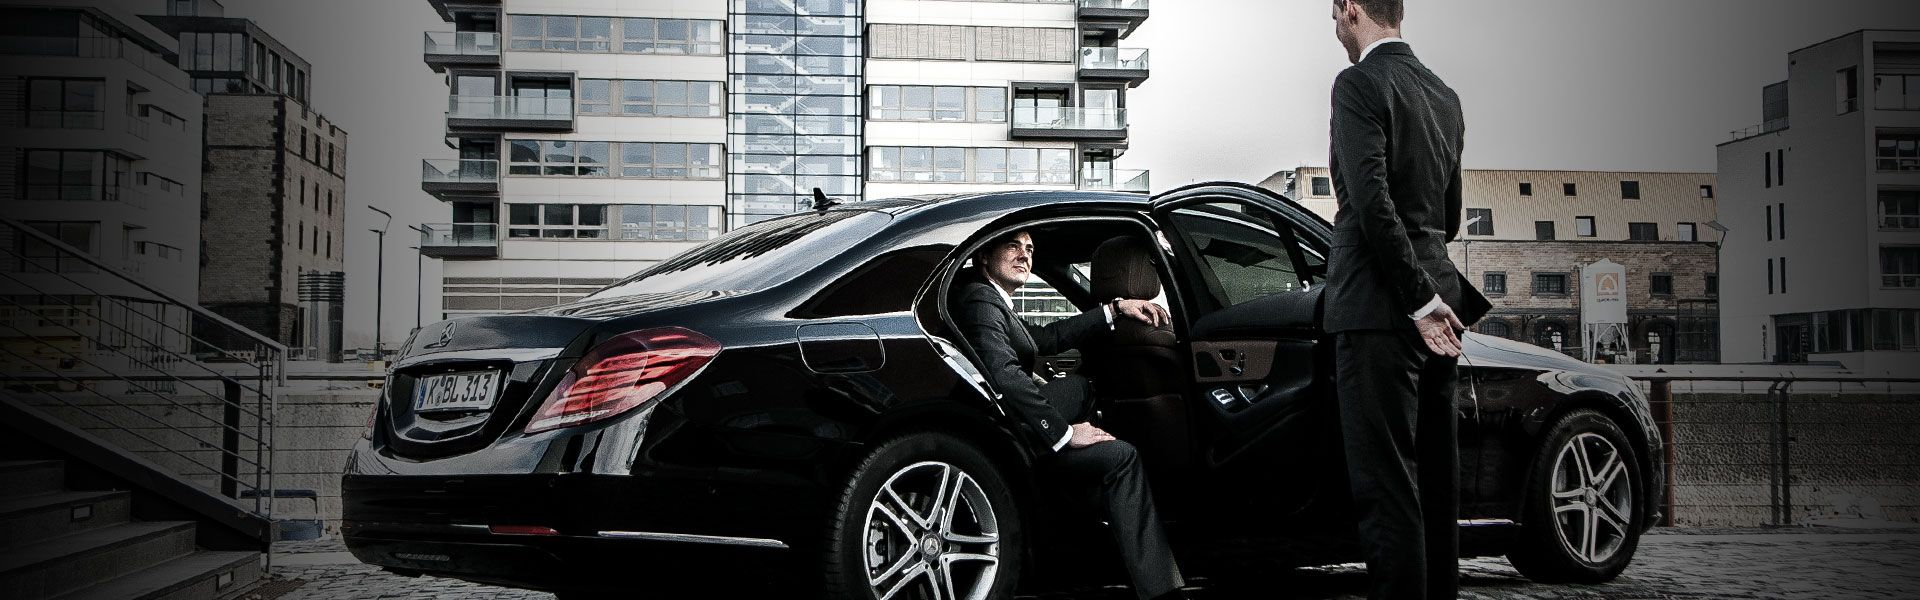 Business Class Transfers Business Class Transfers Brisbane Airport To Gold Cost Sunshine Coast Party Bus Rental Party Bus Limousine